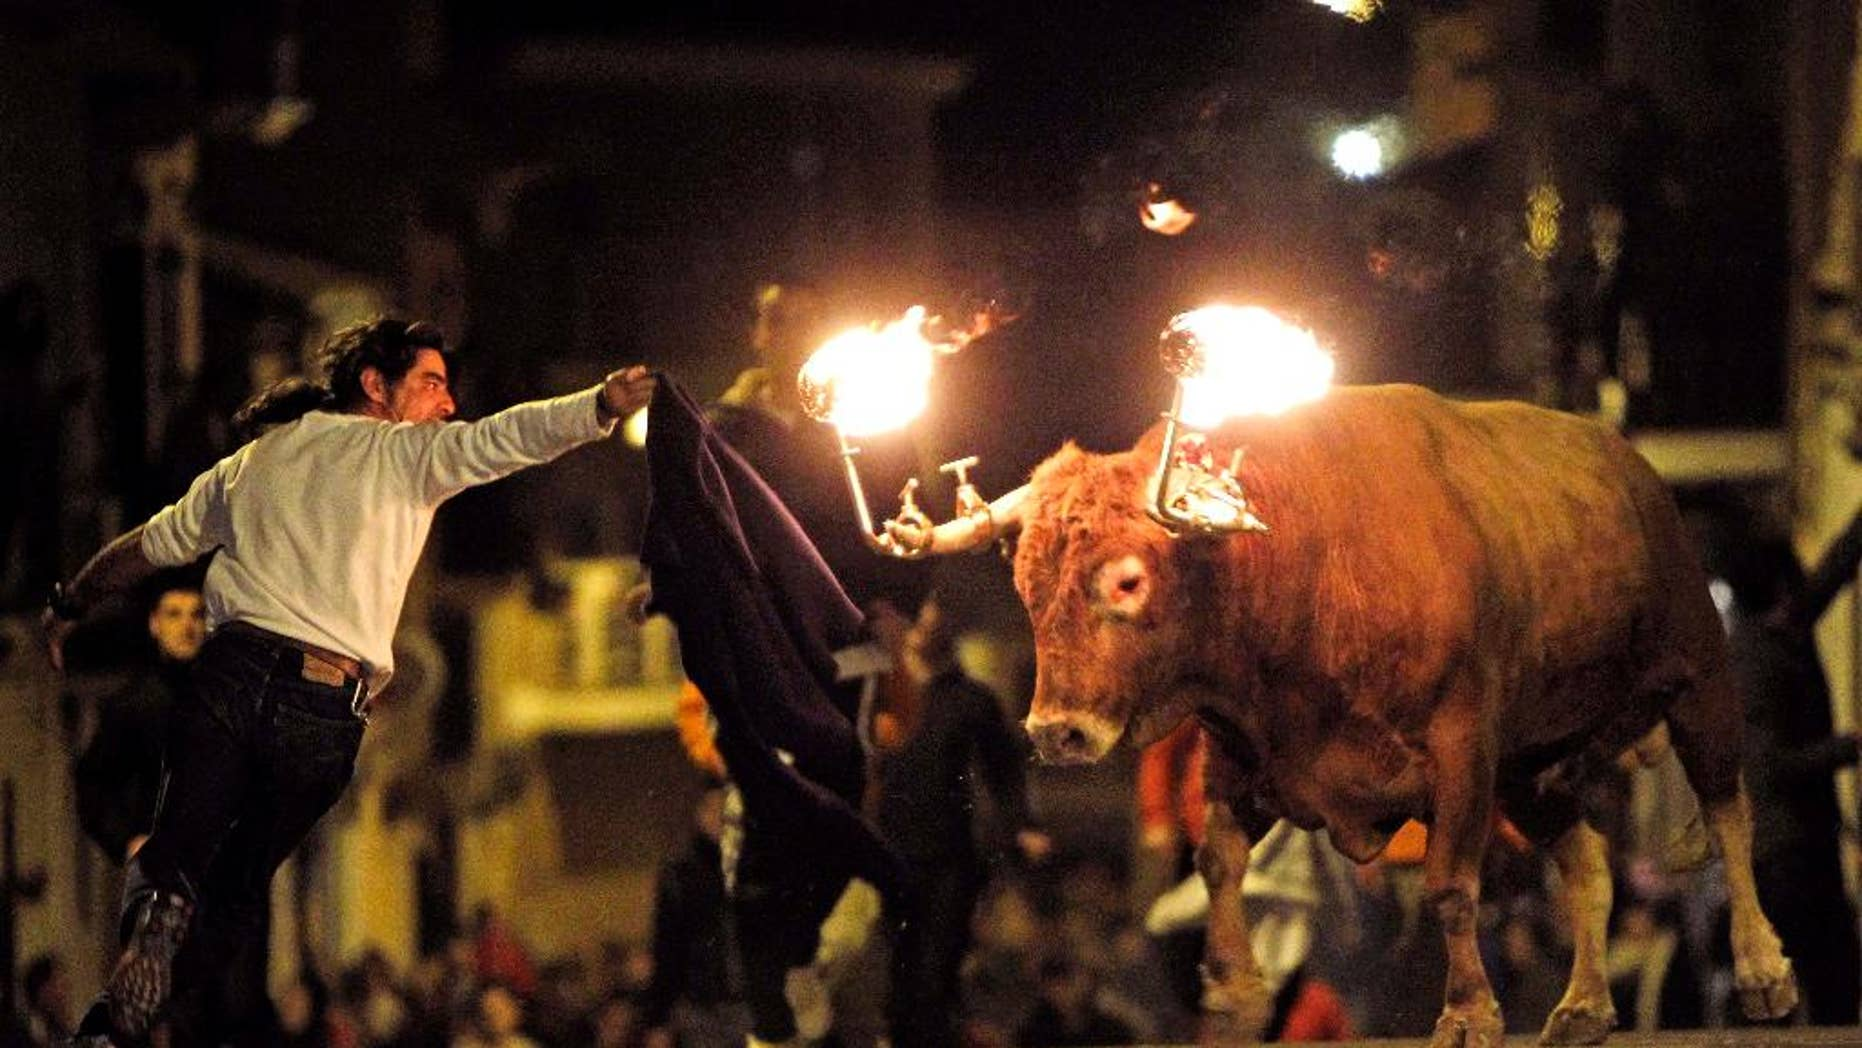 FILE - In this Jan. 17, 2010 file photo, a reveler runs away from a bull with flaming horns during a festivity in honor of Saint Anthony, the patron saint of animals, in the streets of Gilet, a town near Valencia, Spain. The city of Valencia has banned a longtime tradition where bulls are set loose on neighborhood streets with flaming balls of wax or fireworks affixed to their horns. Mayor Joan Ribo cited cruelty to animals for the ban approved Friday, June 10, 2016. The city council also cut funding for bull runs and bullfighting schools but did not move to ban bullfighting. (AP Photo/Alberto Saiz, File)